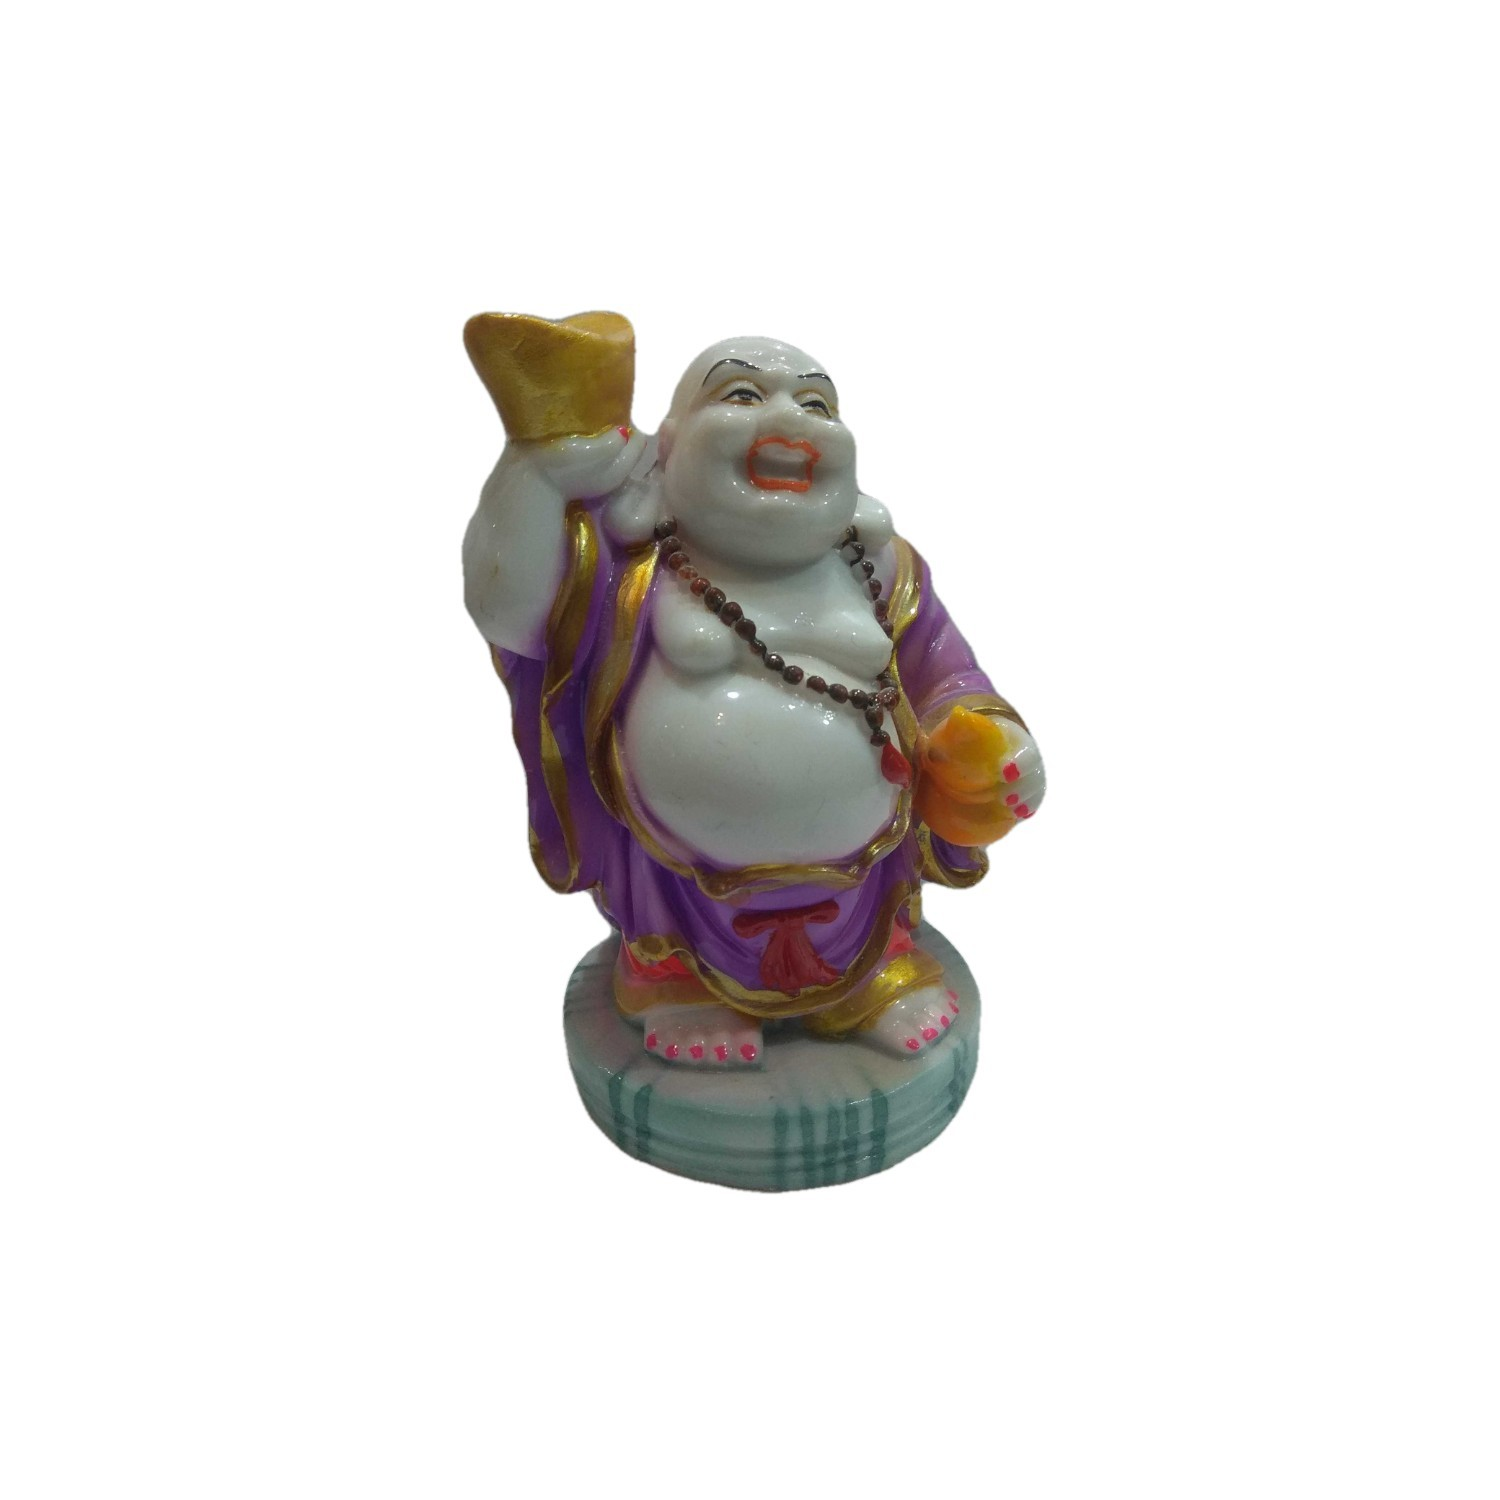 Handmade Excellent Purple Marble Art Laughing Buddha Ji Showpiece  by Awarded Indian Rural Artisan